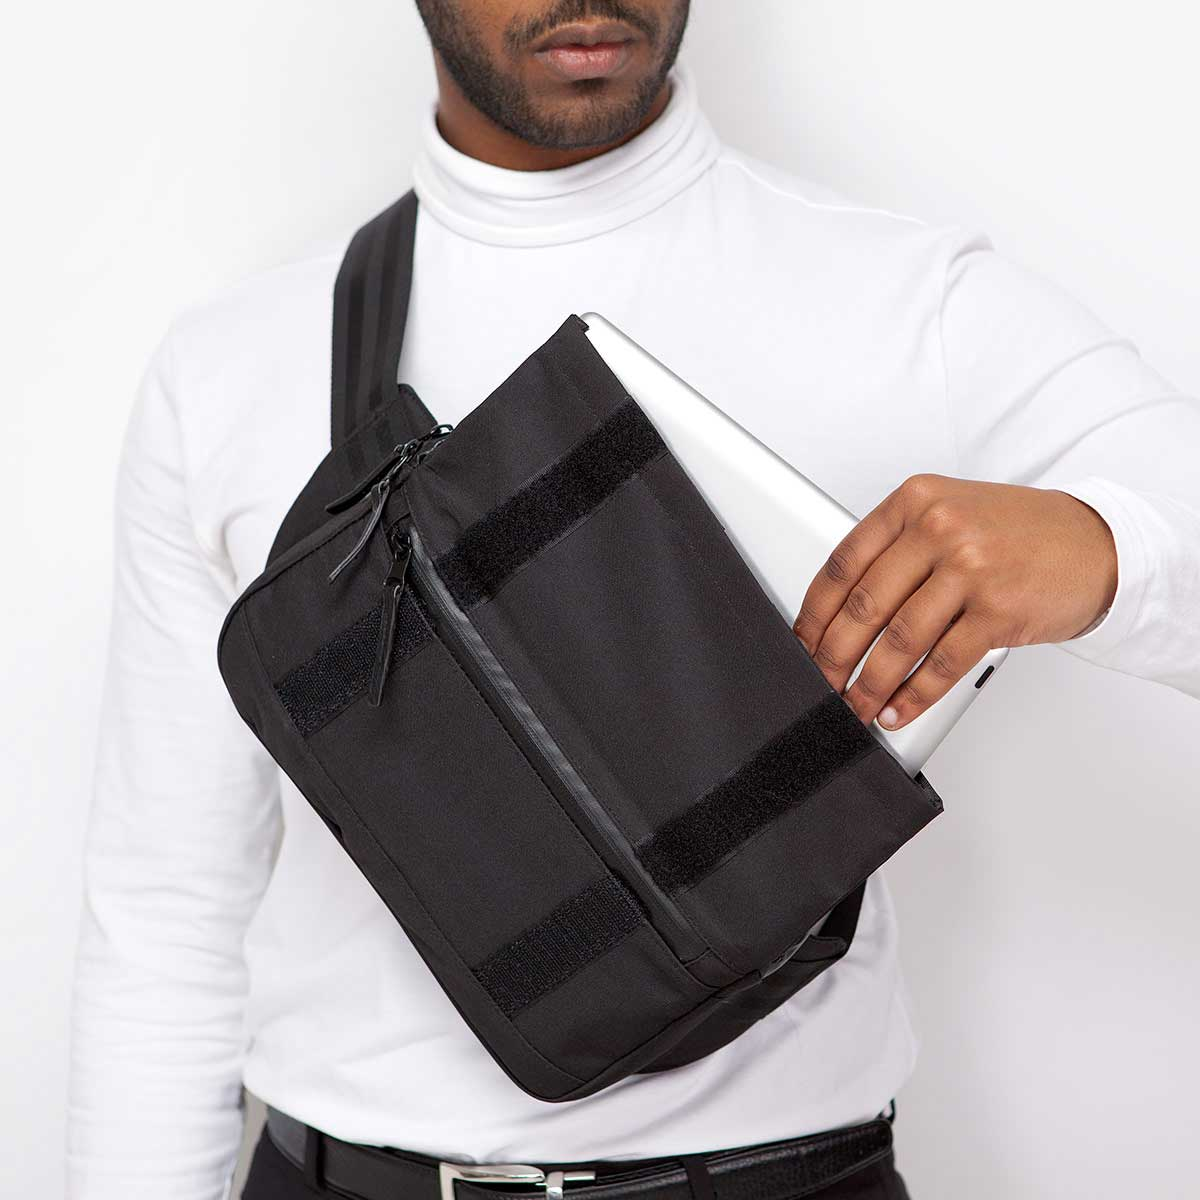 luca bag ufon iPad hip bag